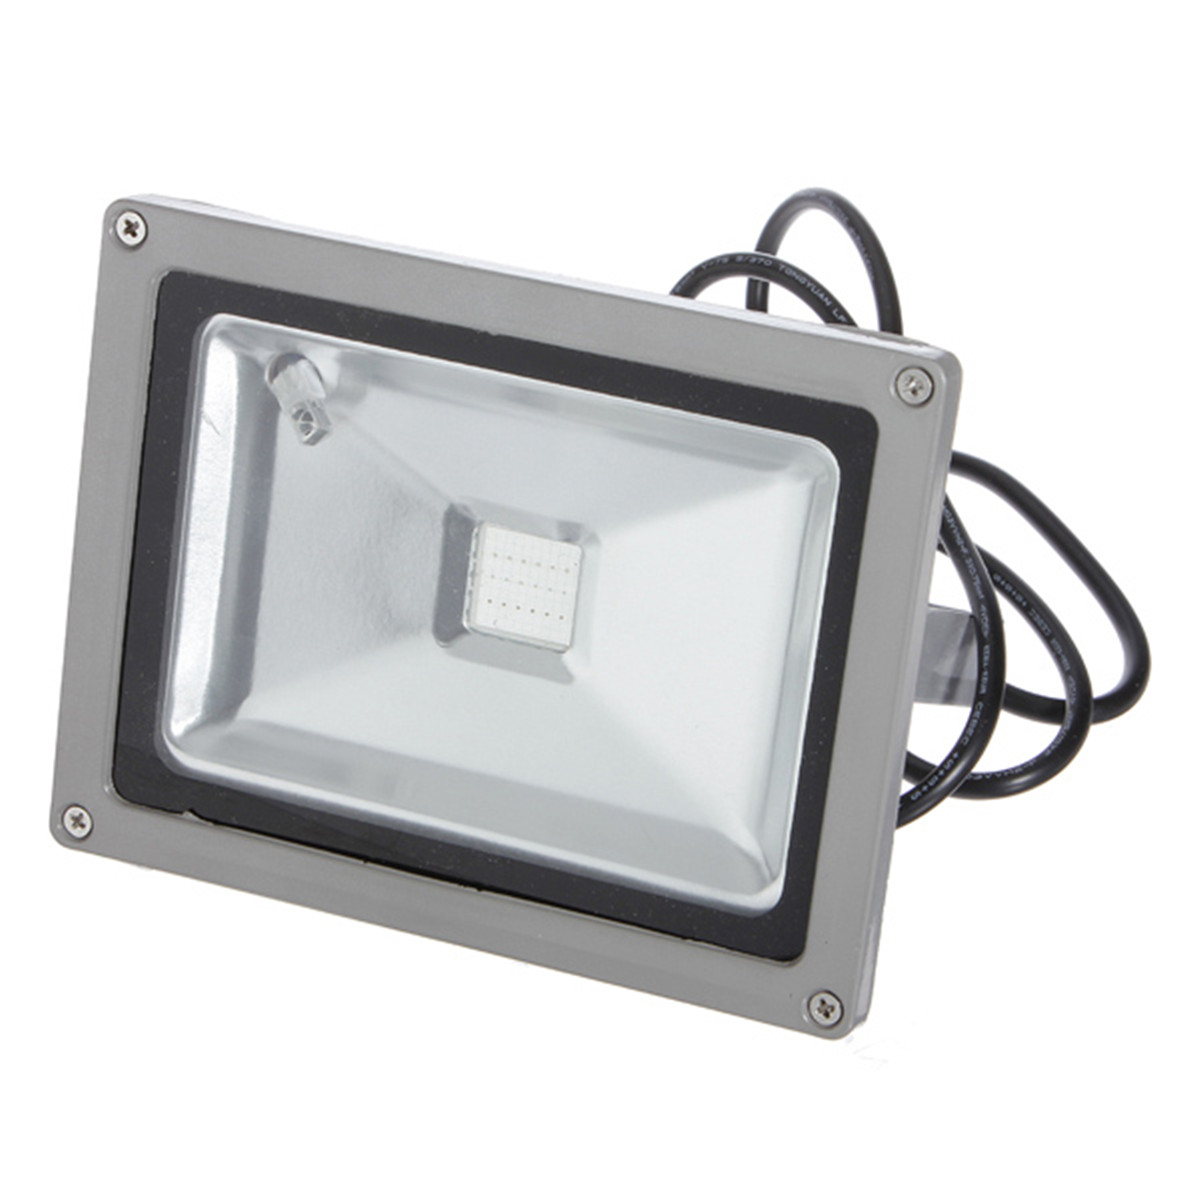 20w led lampe projecteur rgb exterieur lumiere ip65 for Lampe led exterieur design